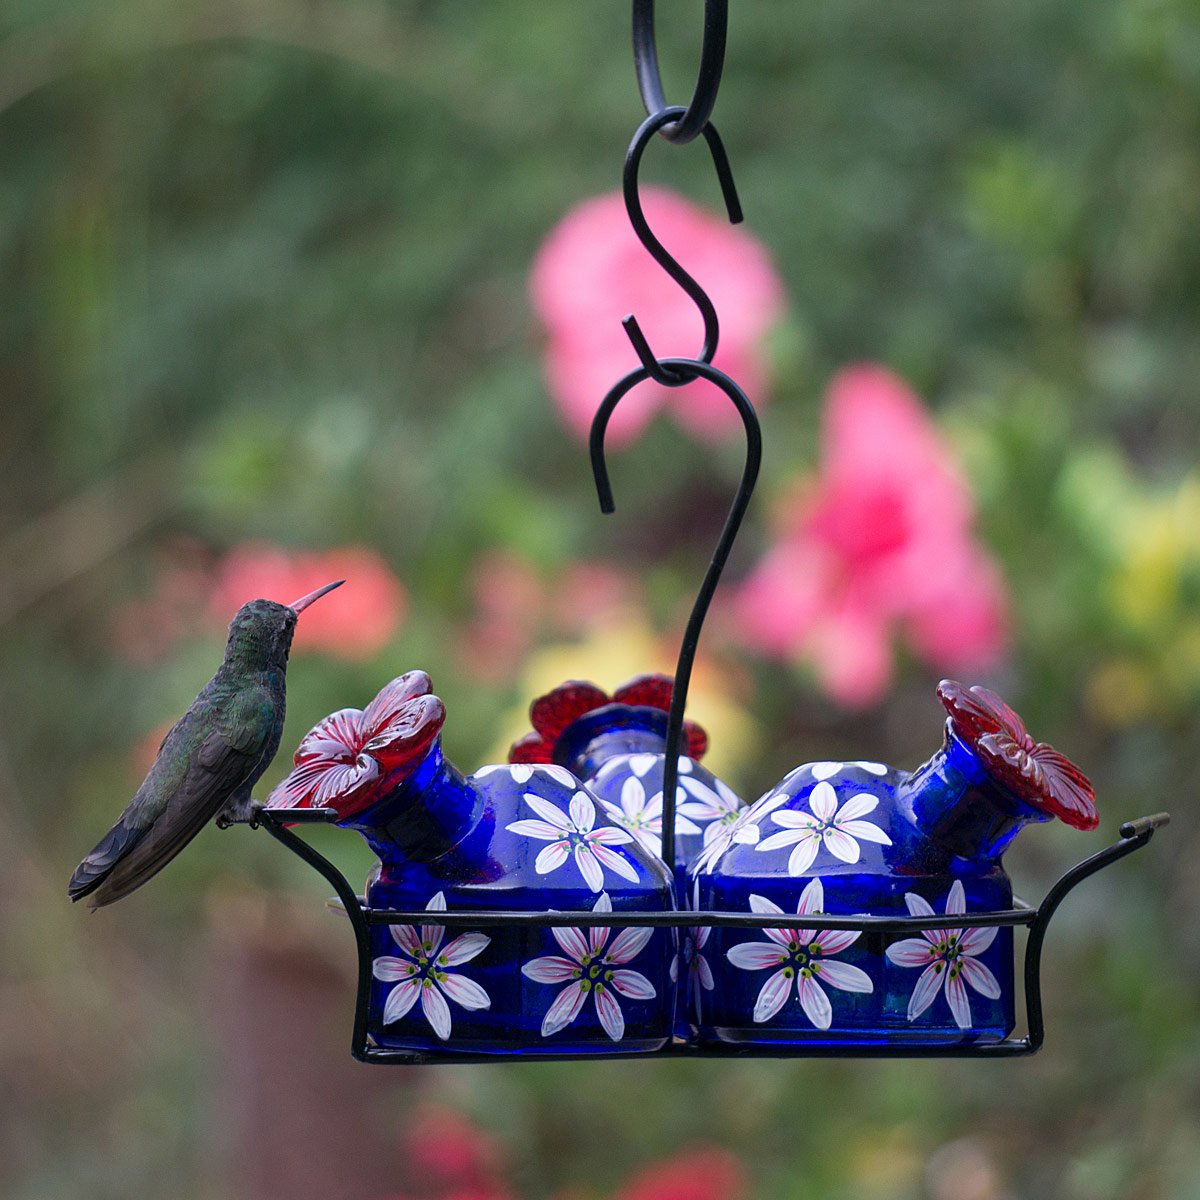 energy special are having to august feeder extra on encourage and give help our feeders an everyone we for extended glass a img friday boost hours sale them hummingbird